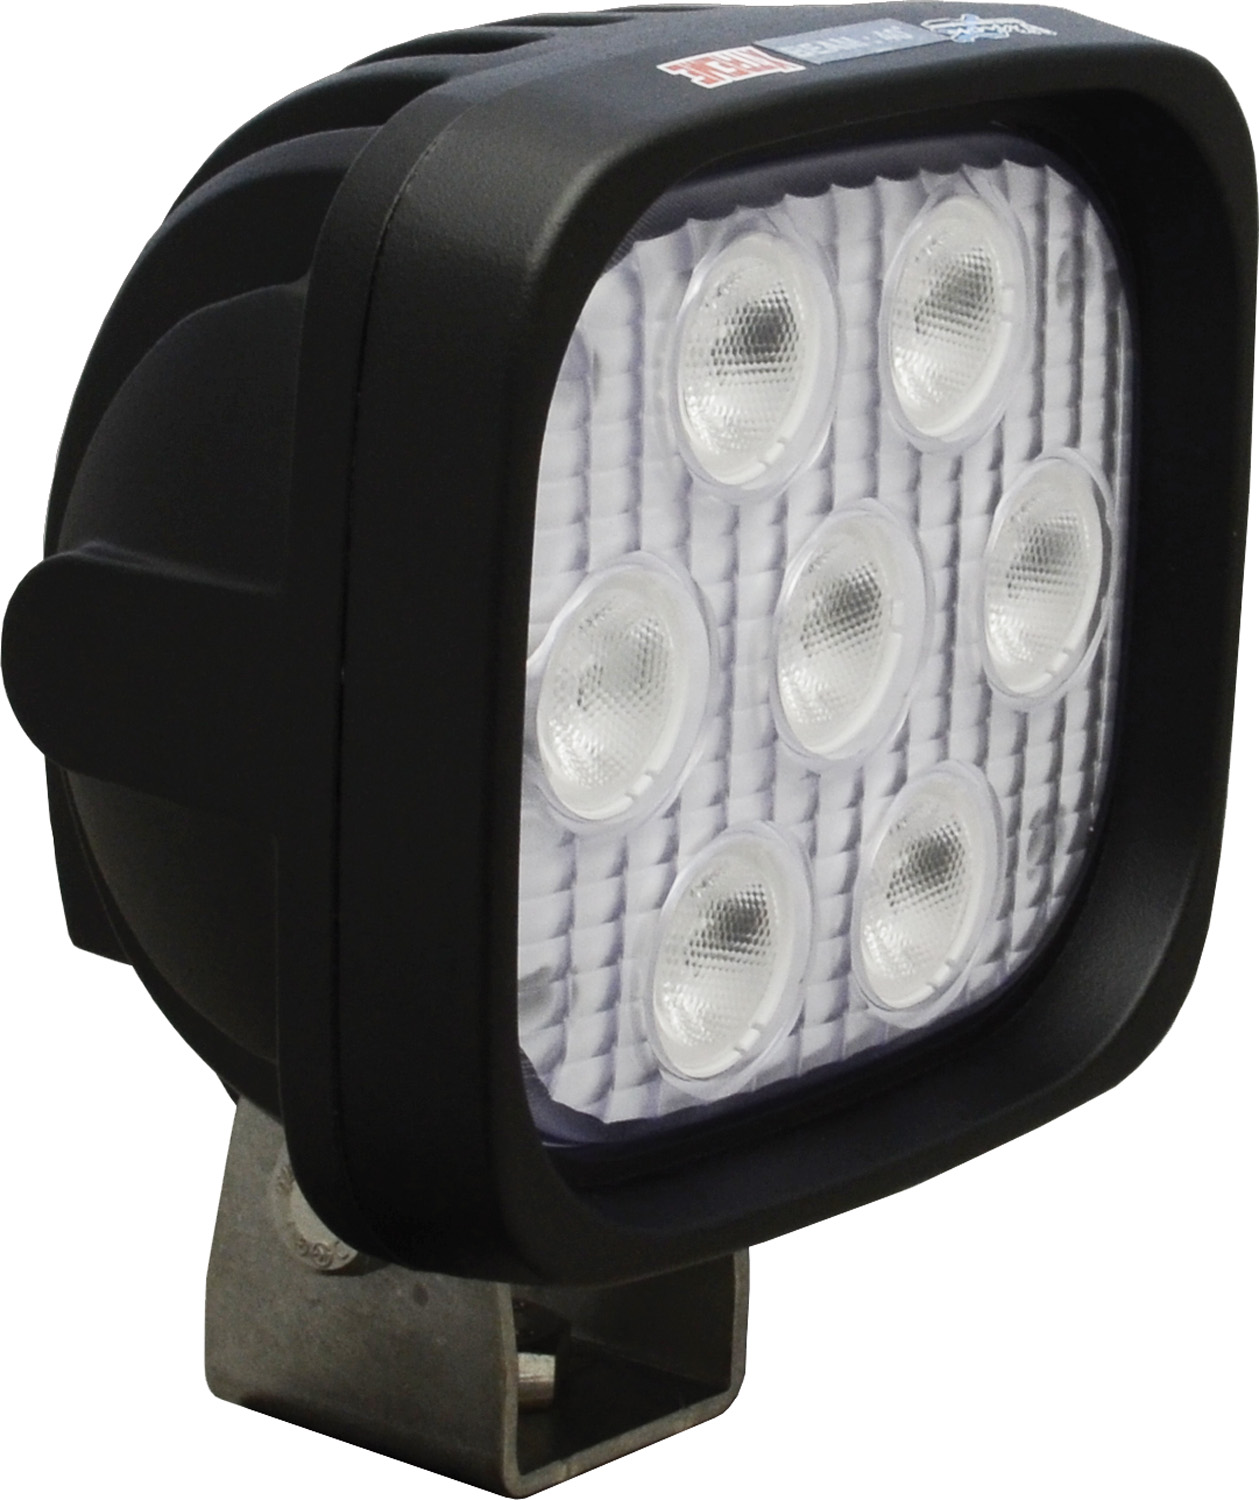 "4"" SQUARE UTILITY MARKET XTREME BLACK 7 5W LED'S 40ç WIDE"